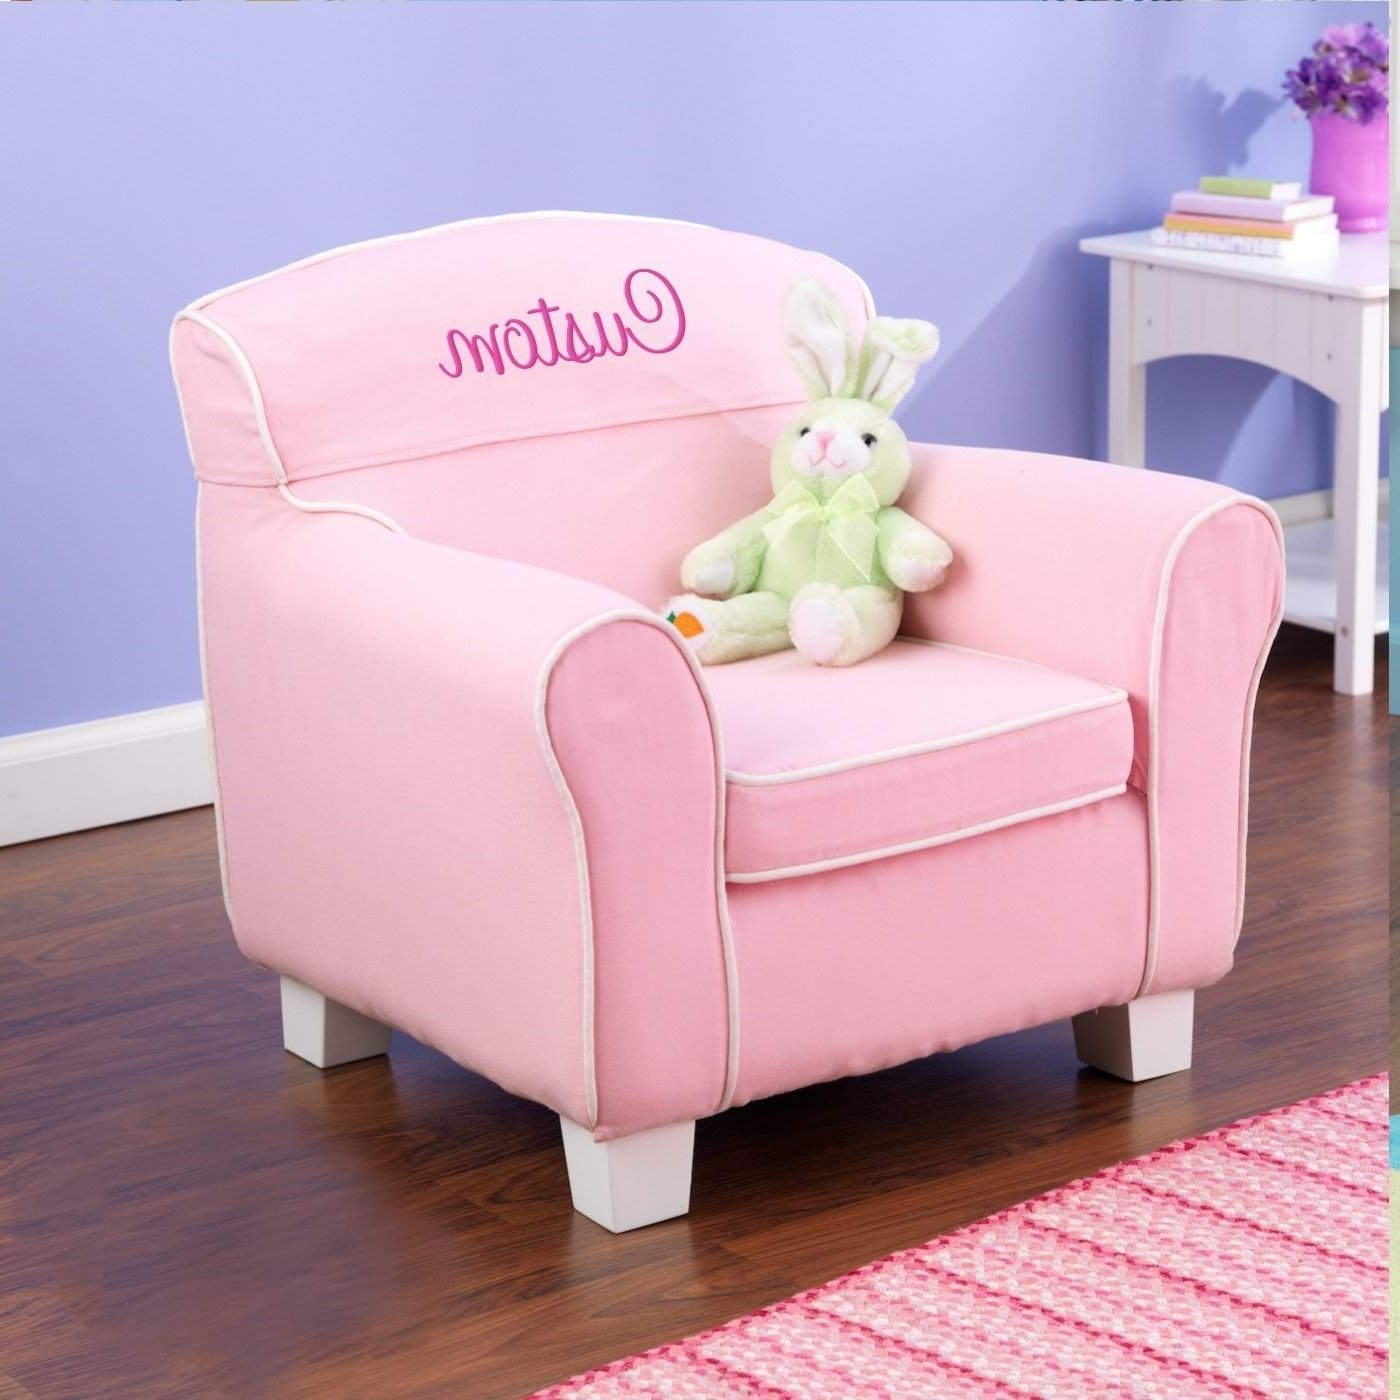 Personalized Kids Chairs And Sofas Inside Recent Baby Lazy Boy Chair Child's Foam Chair Bed Toddler Chair Canada (View 10 of 15)